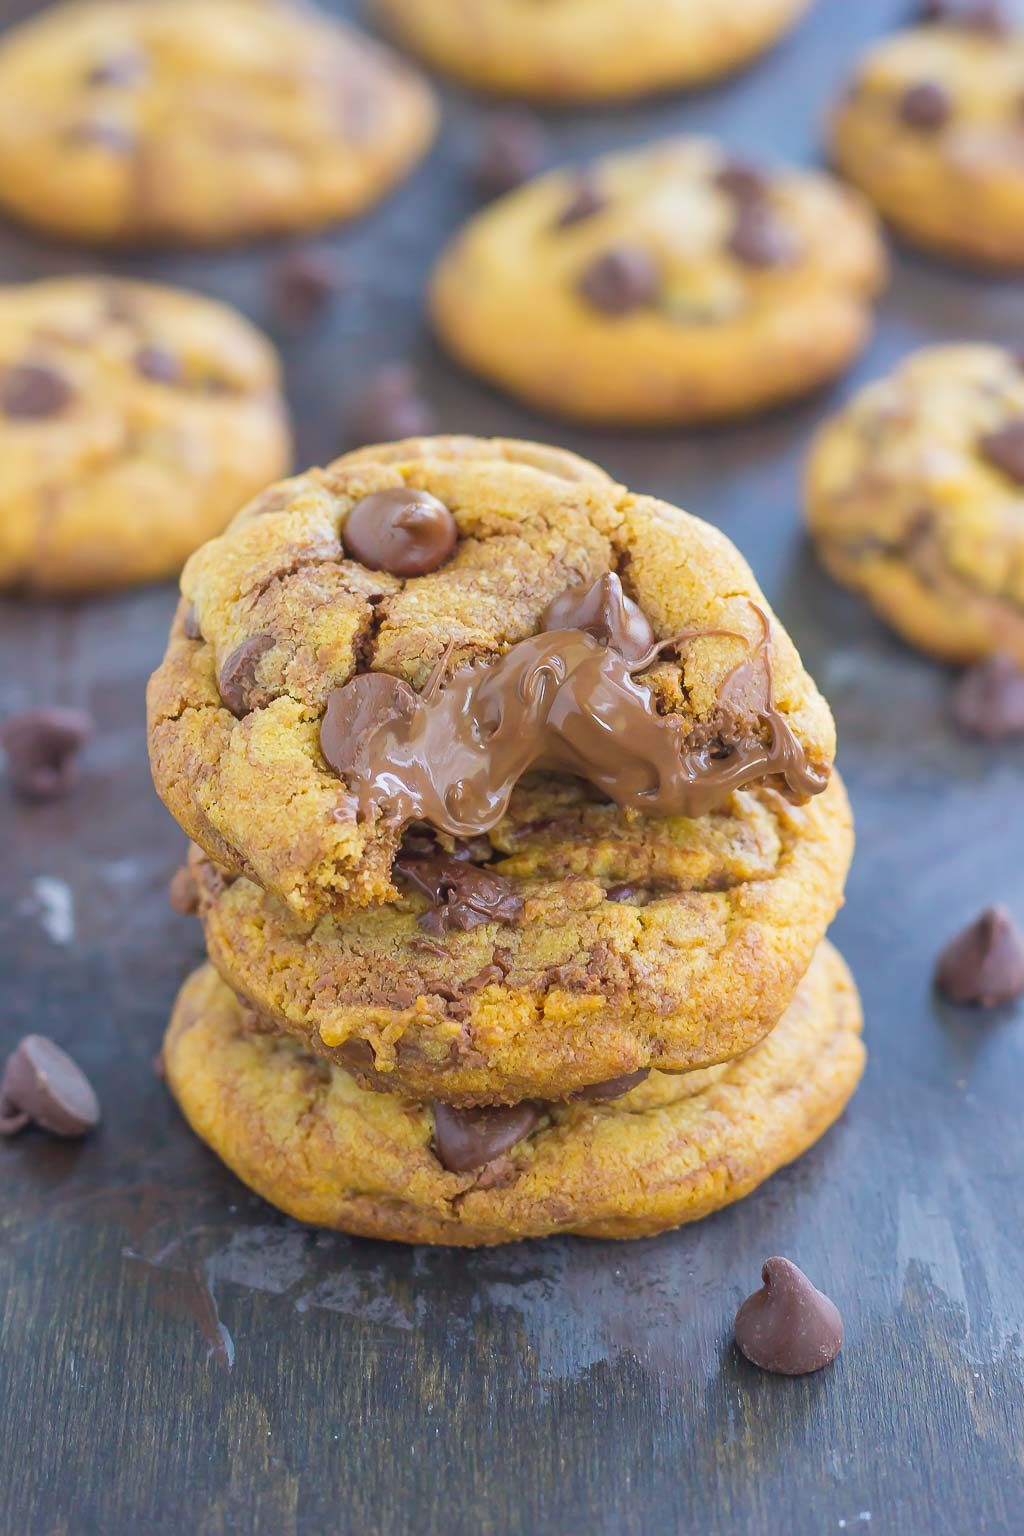 These Nutella Stuffed Chocolate Chip Cookies are sure to satisfy your sweet tooth. Loaded with creamy Nutella and rich chocolate, you'll be baking these over and over again!